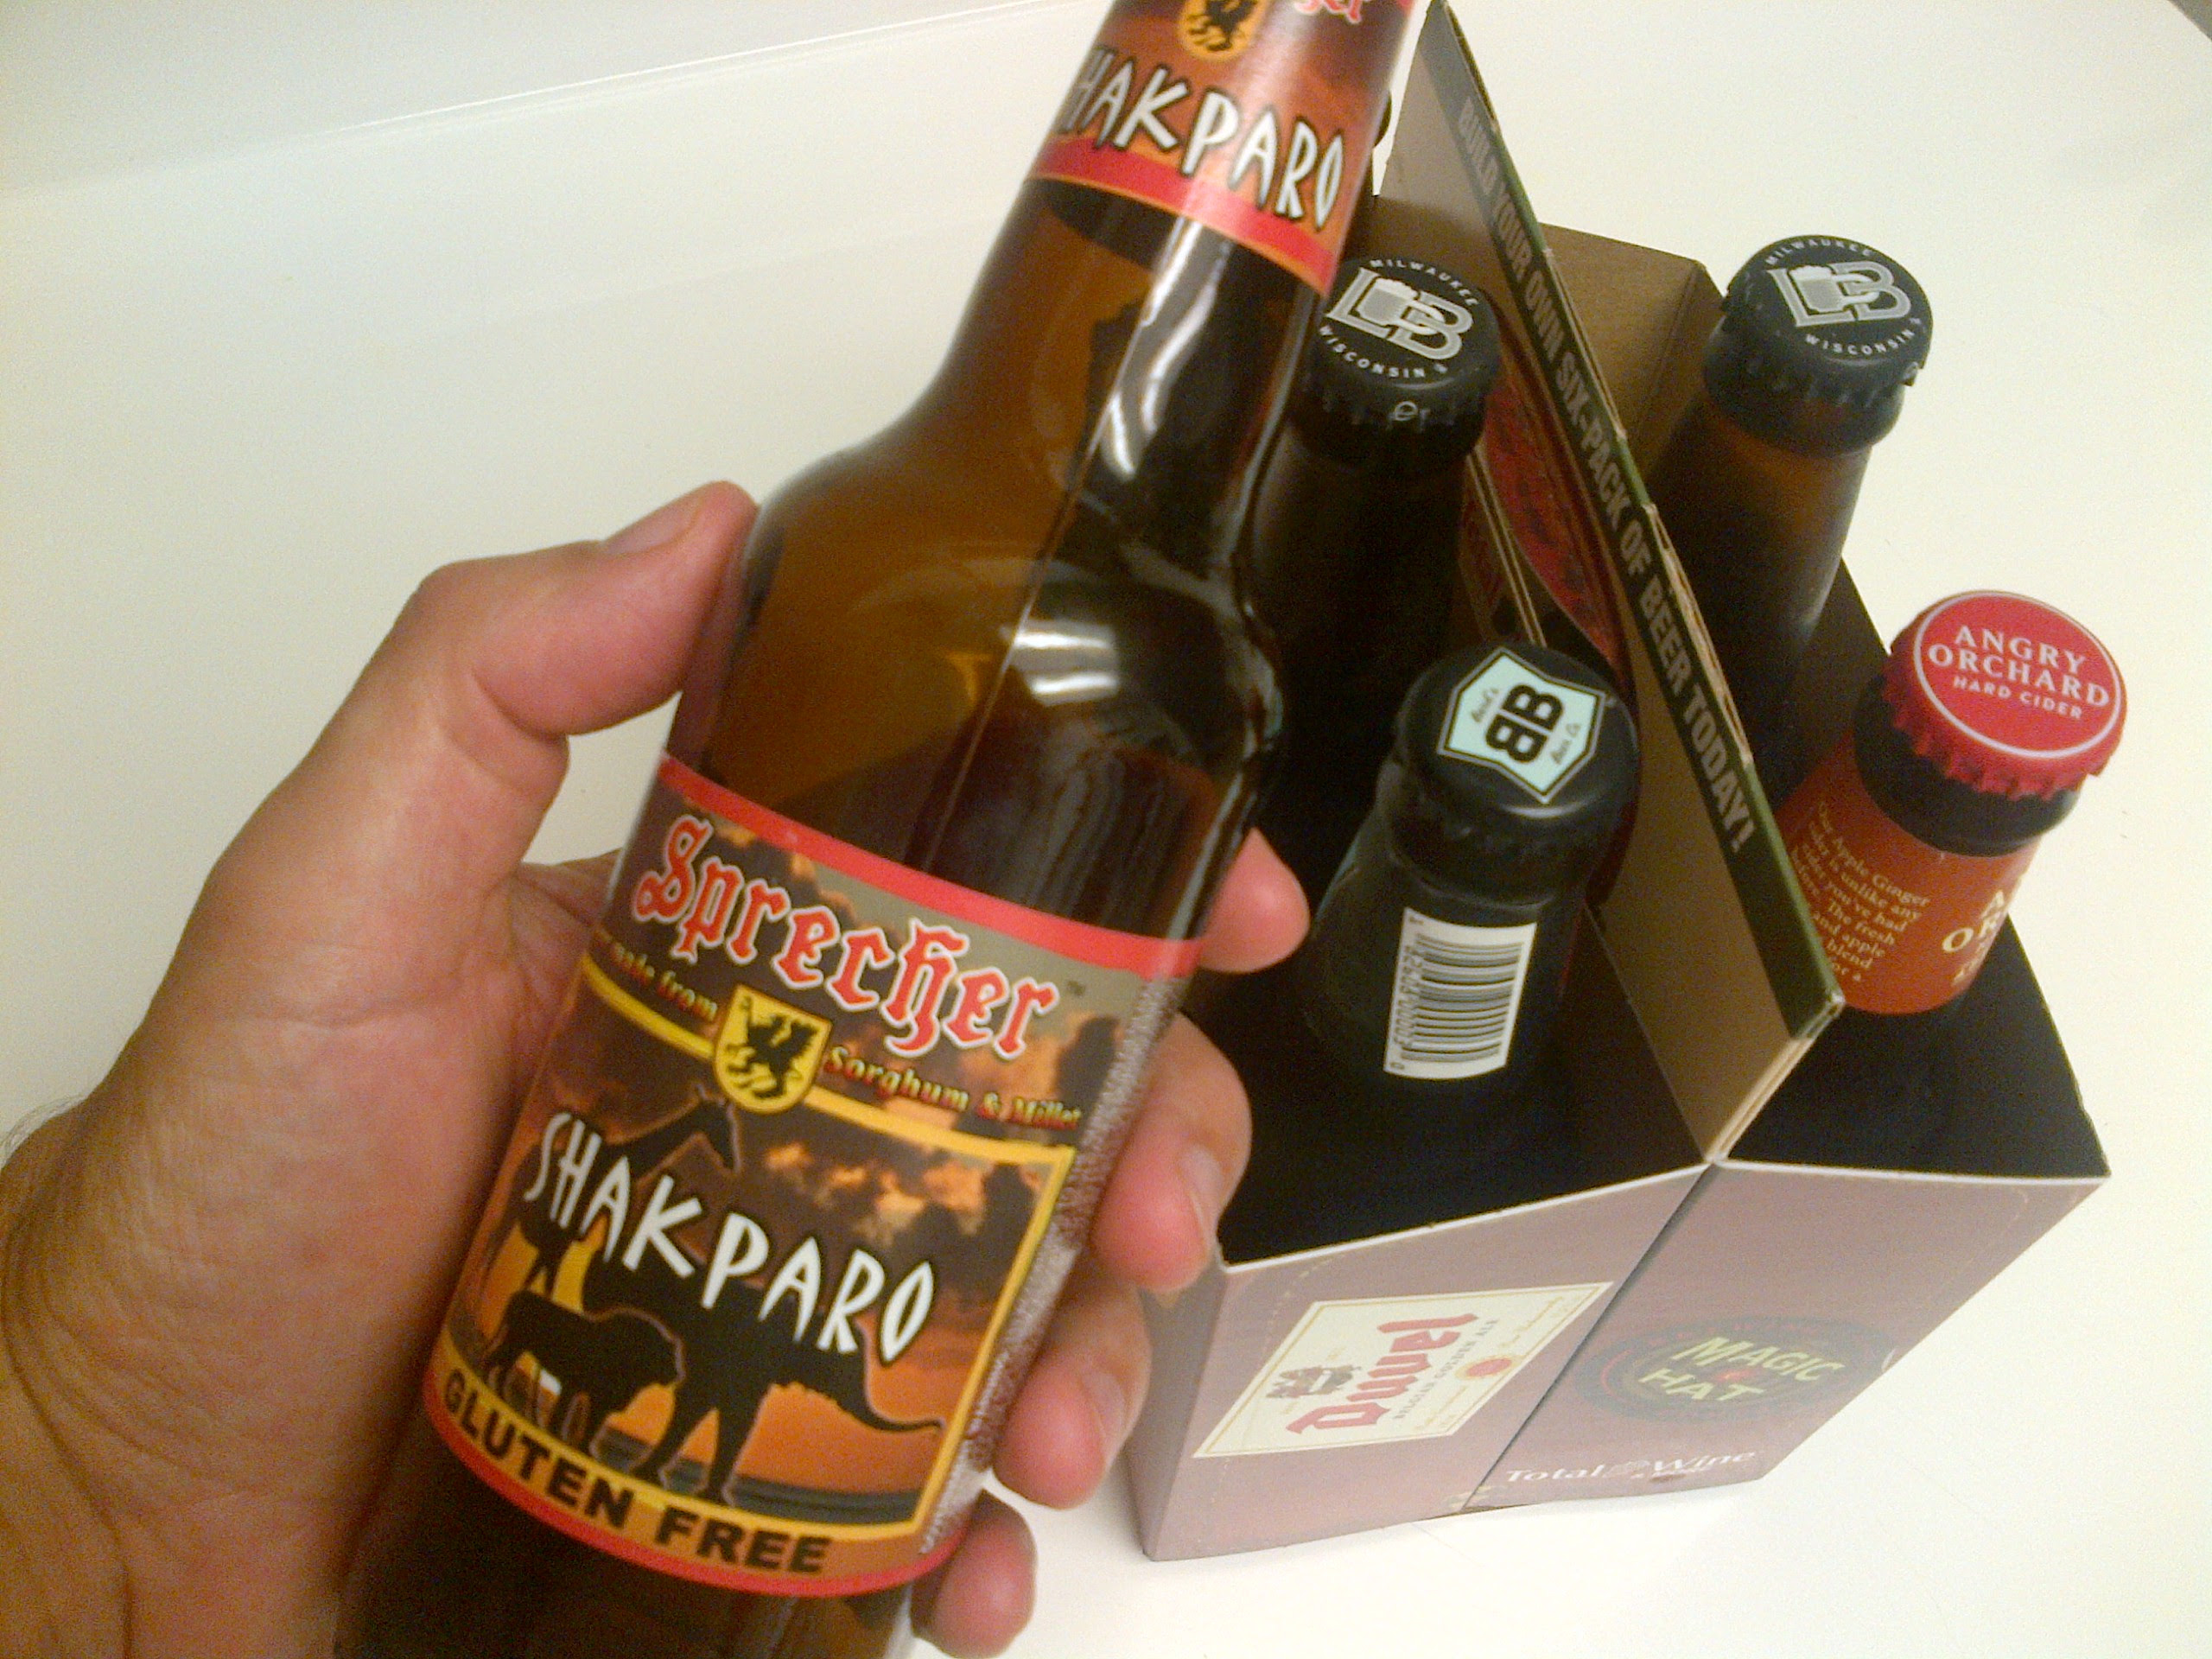 11 Gluten Free Beers (and a cider) Reviewed